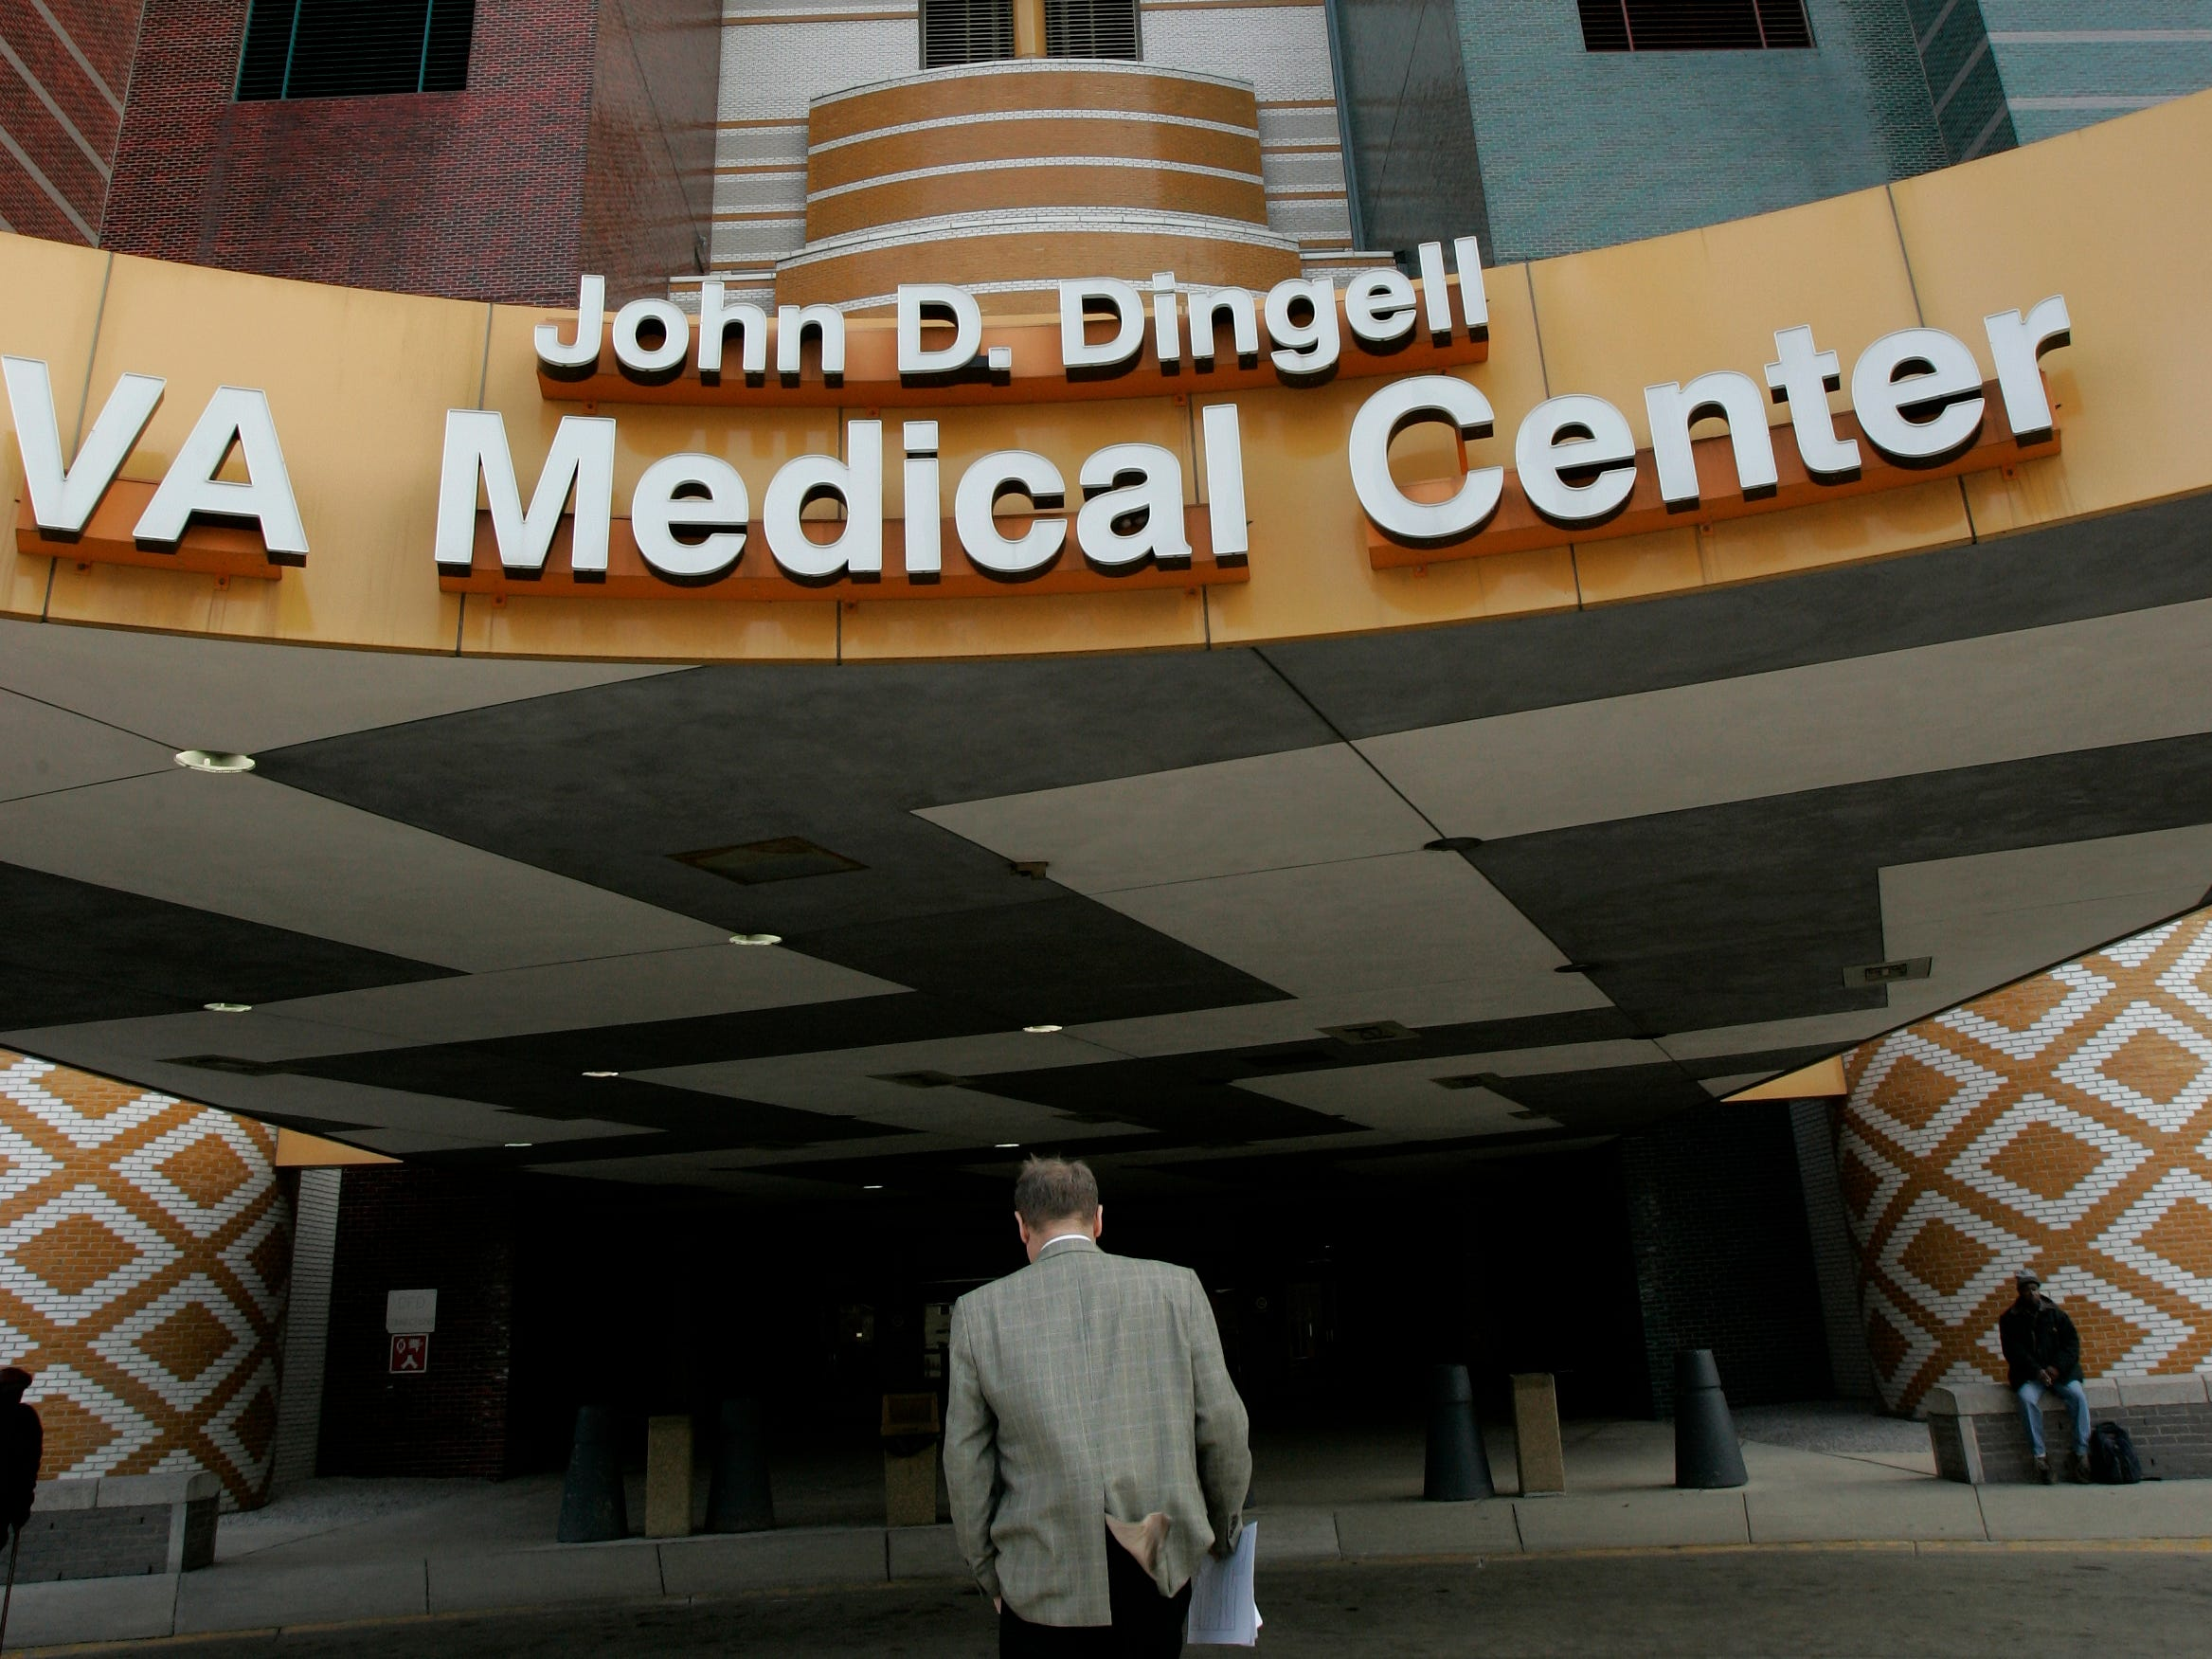 In the 1990s, Detroit the John D. Dingell VA Medical Center opened in Detroit, now offering services to nearly 350,000 veterans in Michigan.